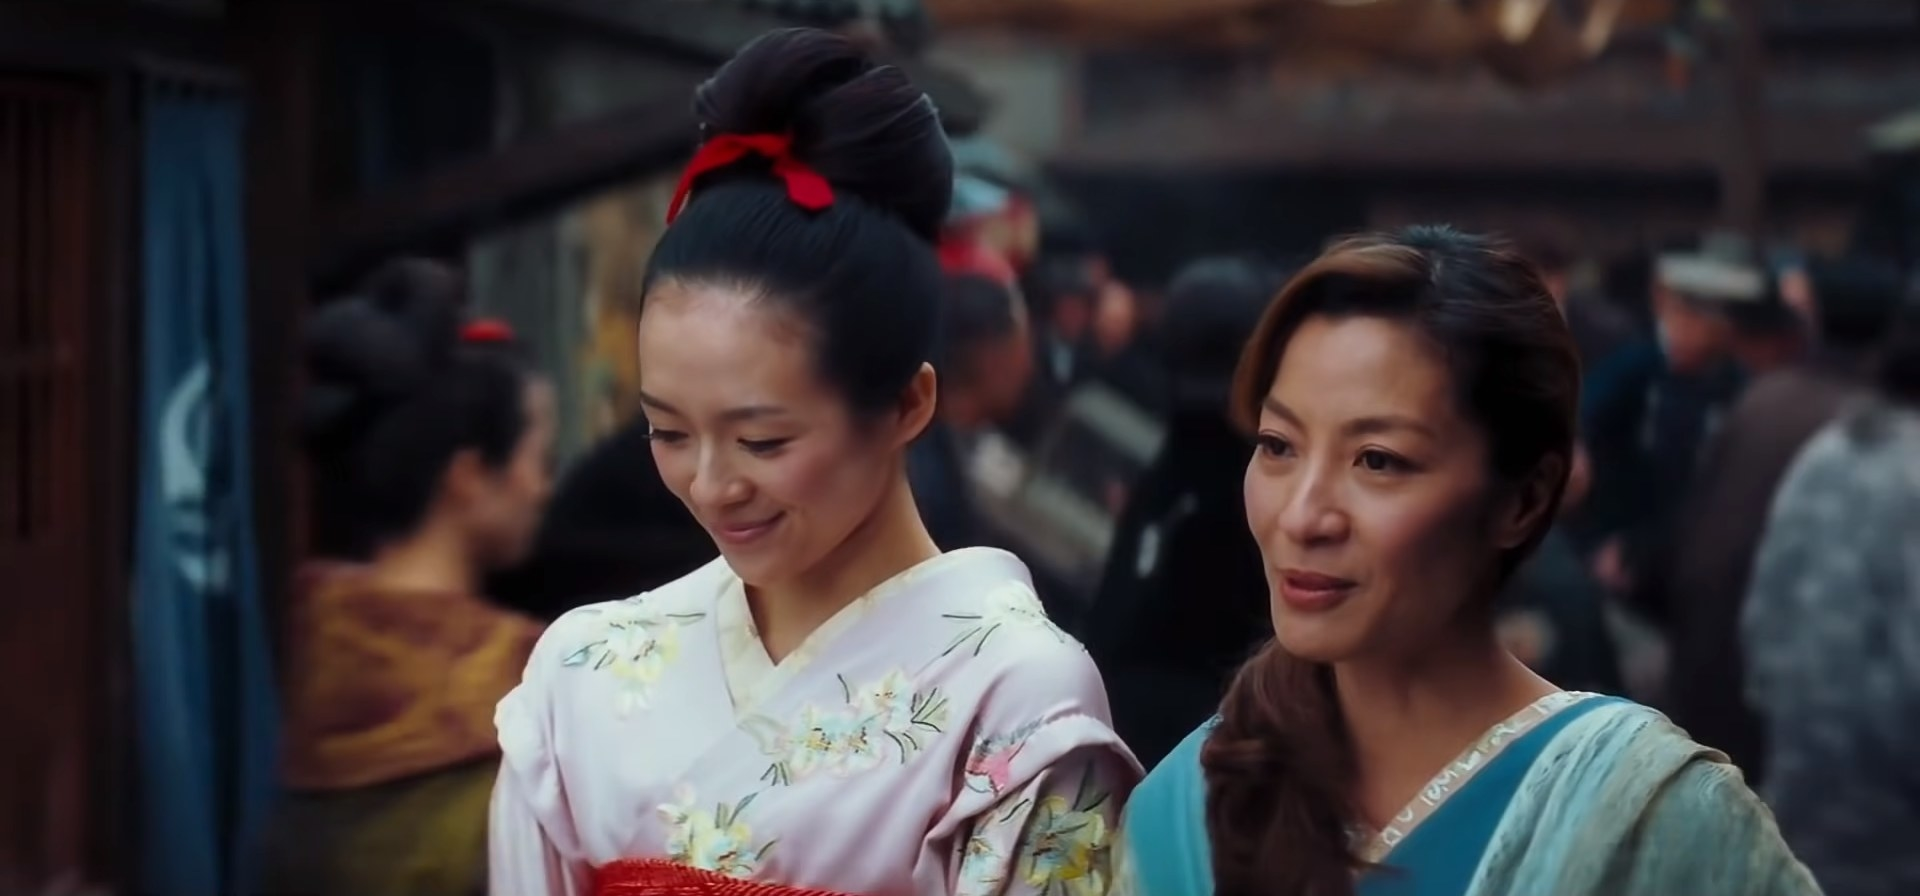 Two women in traditional Japanese dress